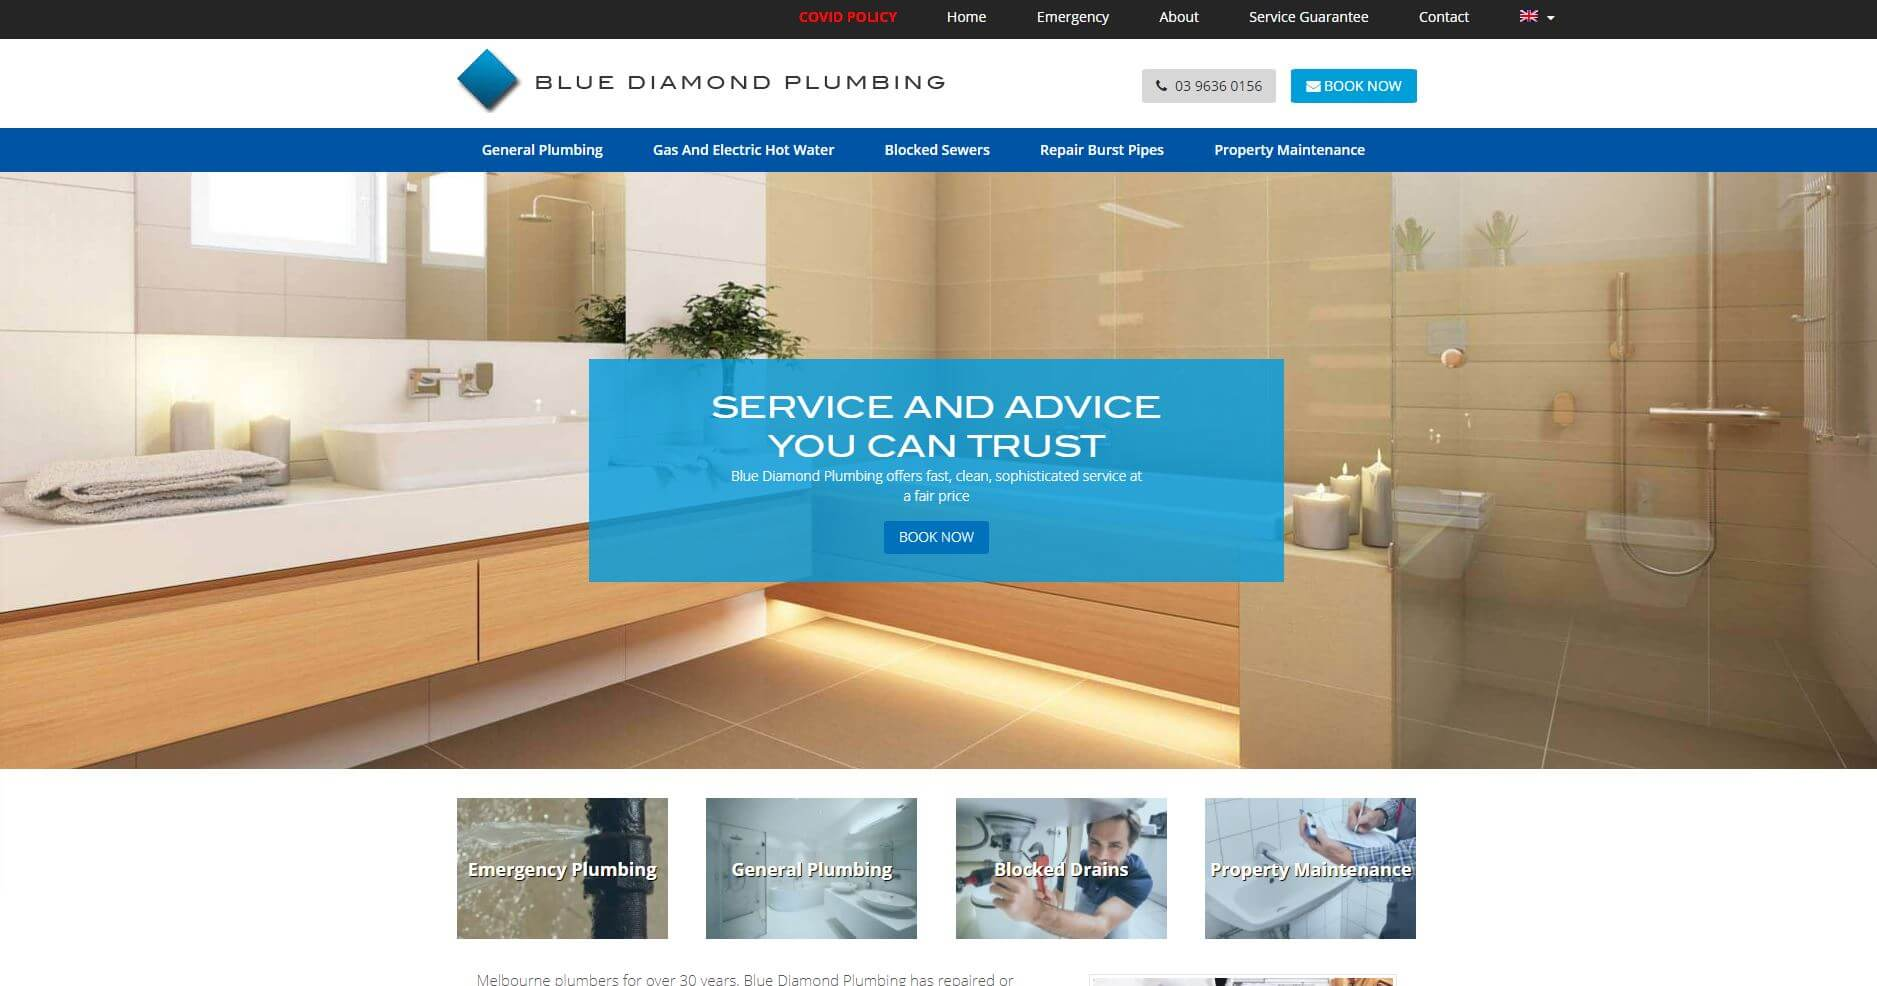 Blue Diamond Plumbing